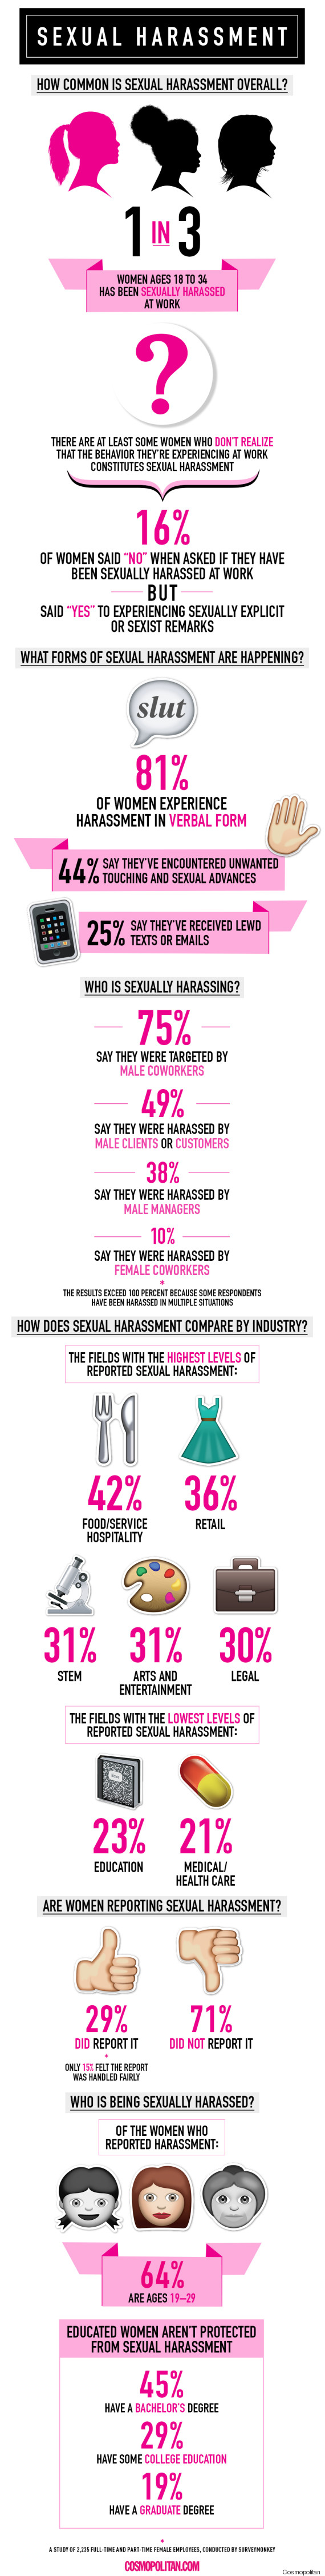 Sexual harassment in india statistics service